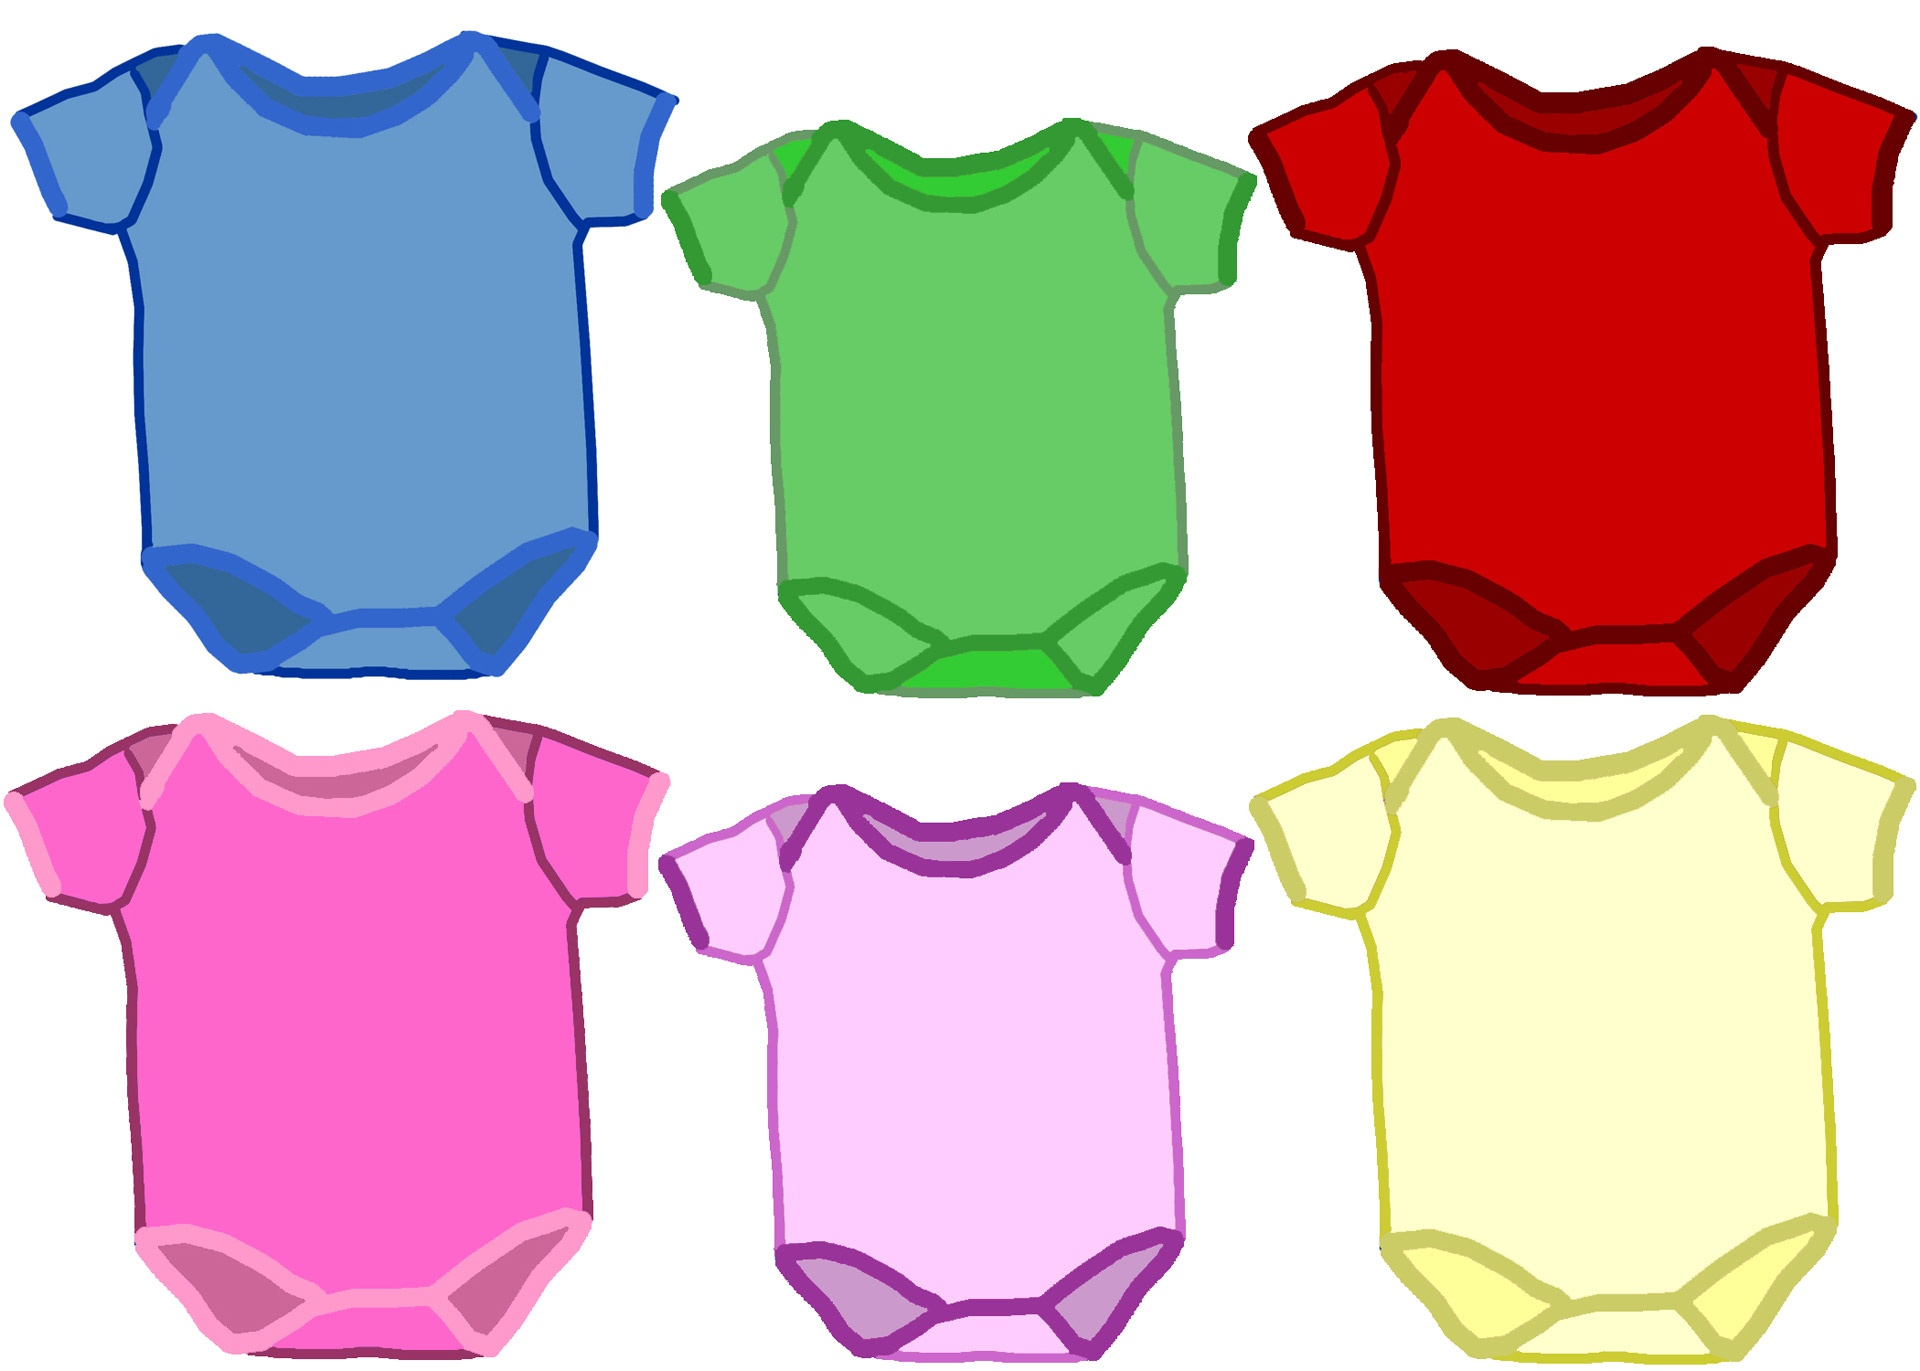 Baby Girl Onesies Clipart | Free Download Best Baby Girl Onesies - Free Printable Onesies